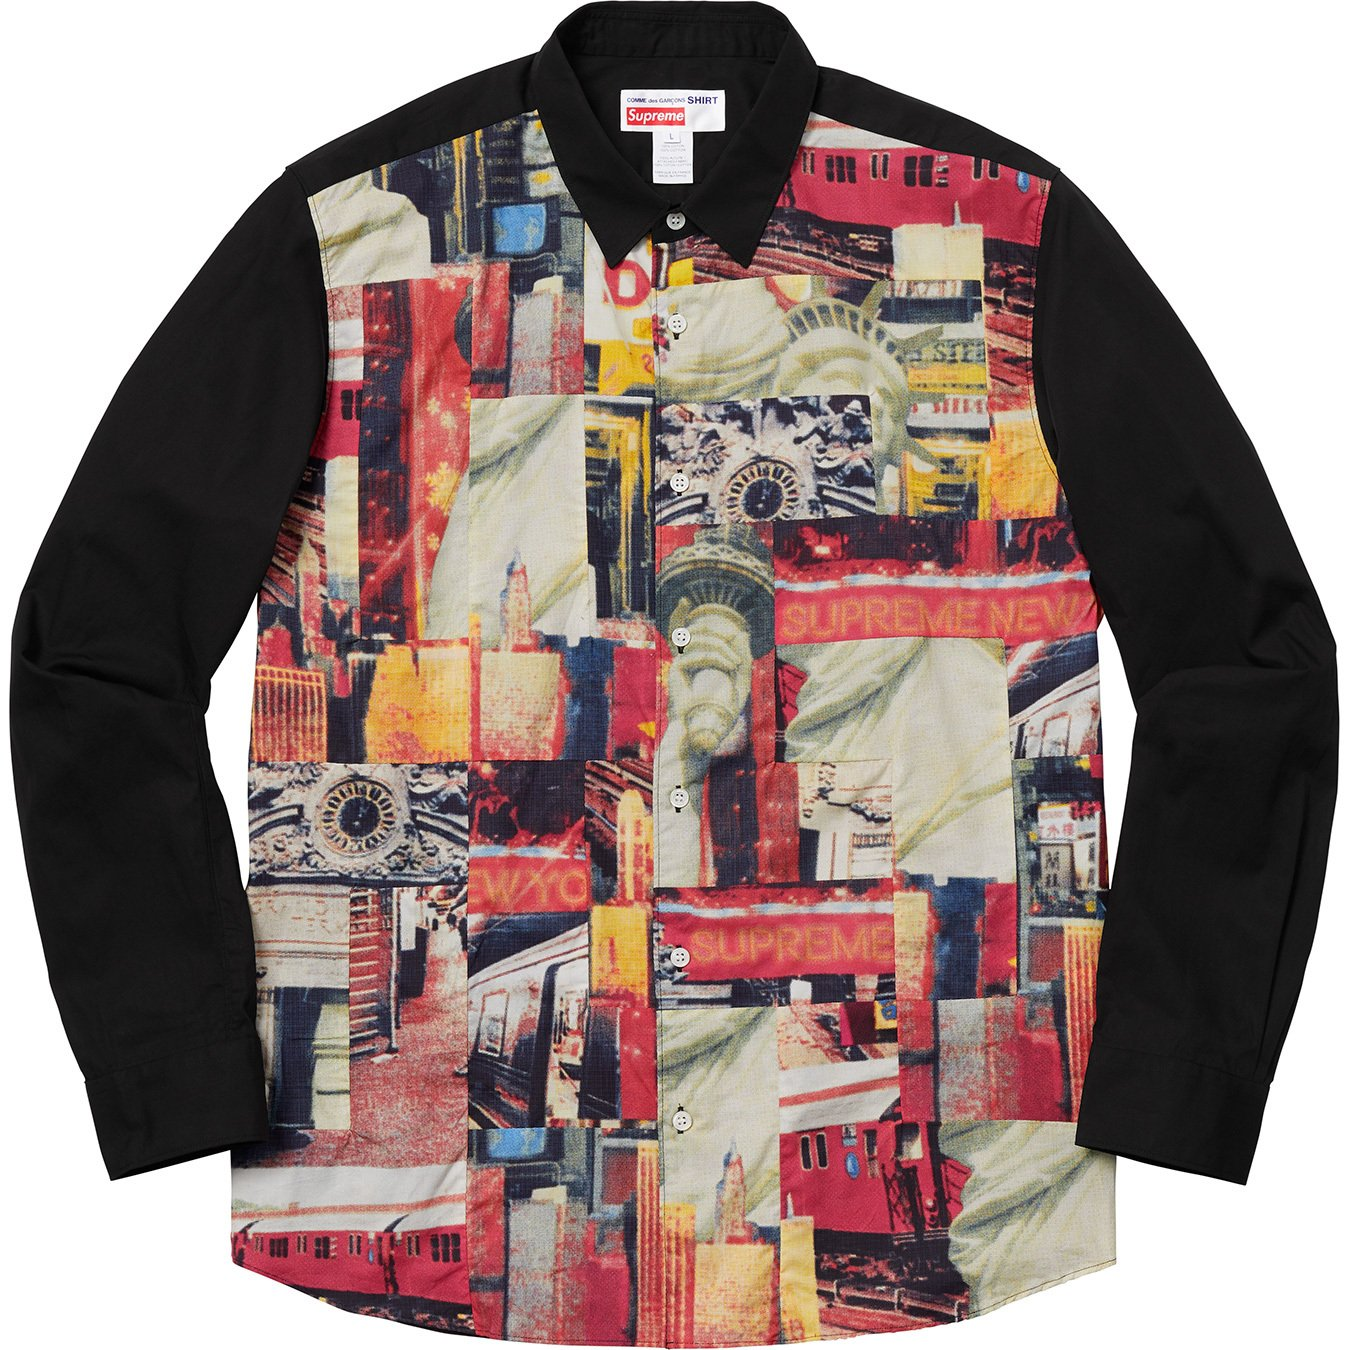 supreme-comme-des-garcons-shirt-cotton-patchwork-button-up-shirt-18aw-collaboration-release-20180915-week4